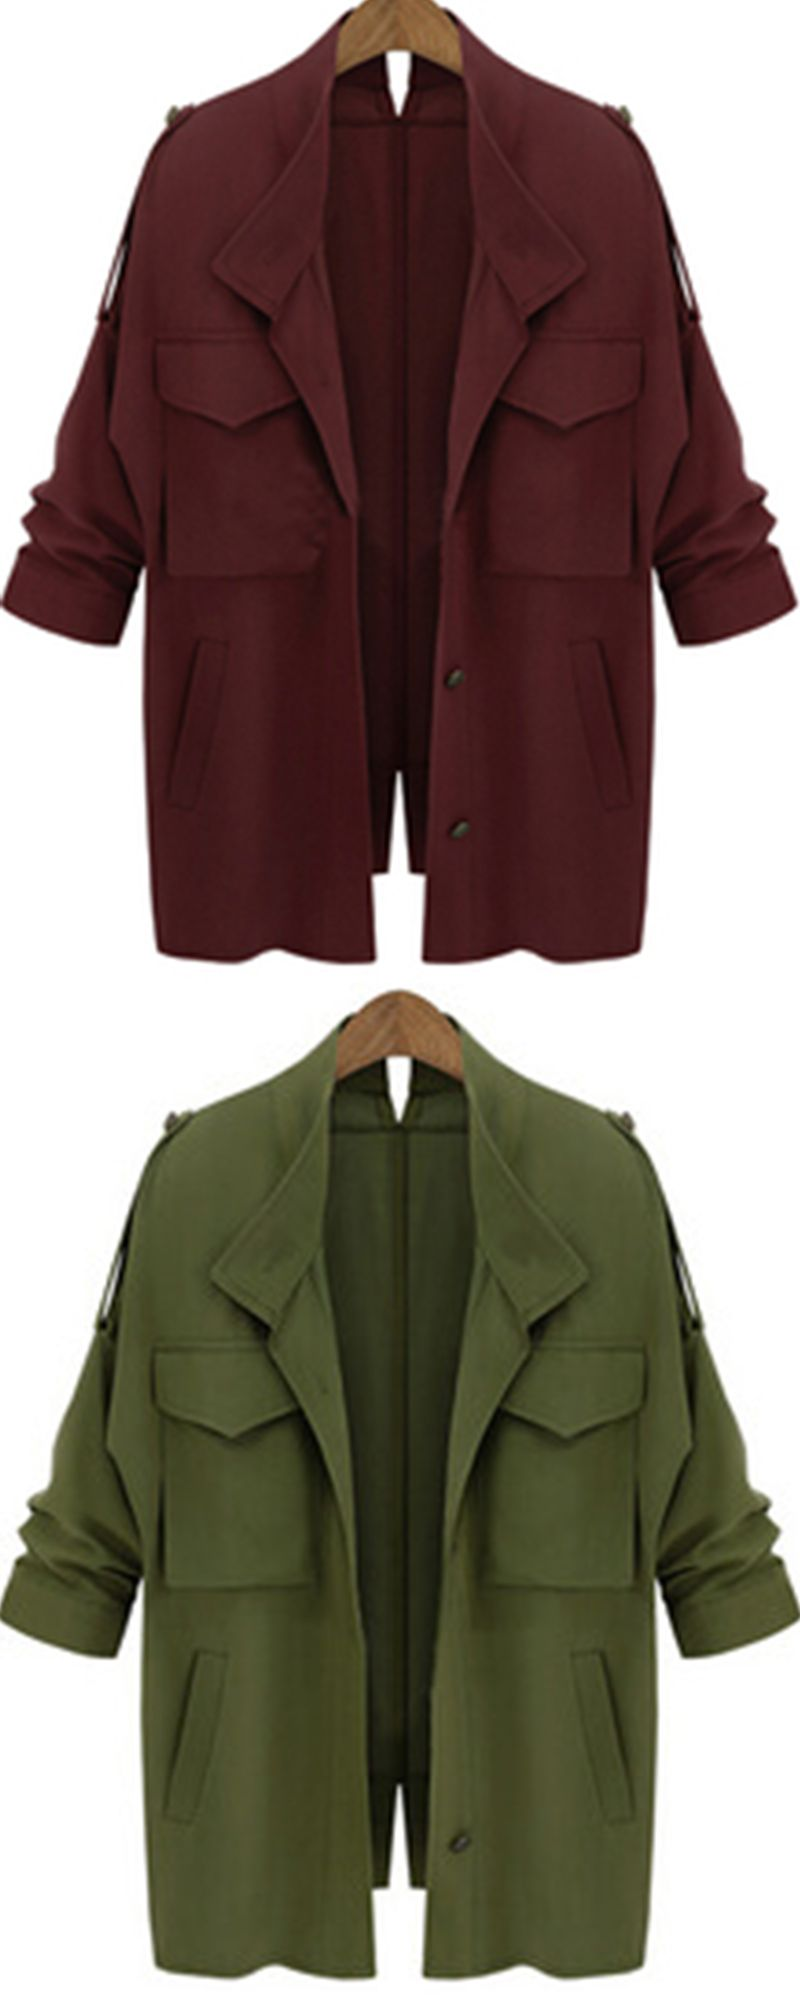 9bdf4a515e1 What i could buy with best price.Women fashion collection-Long sleeve  pocket loose coat. Give you a wonderful fashion coat!